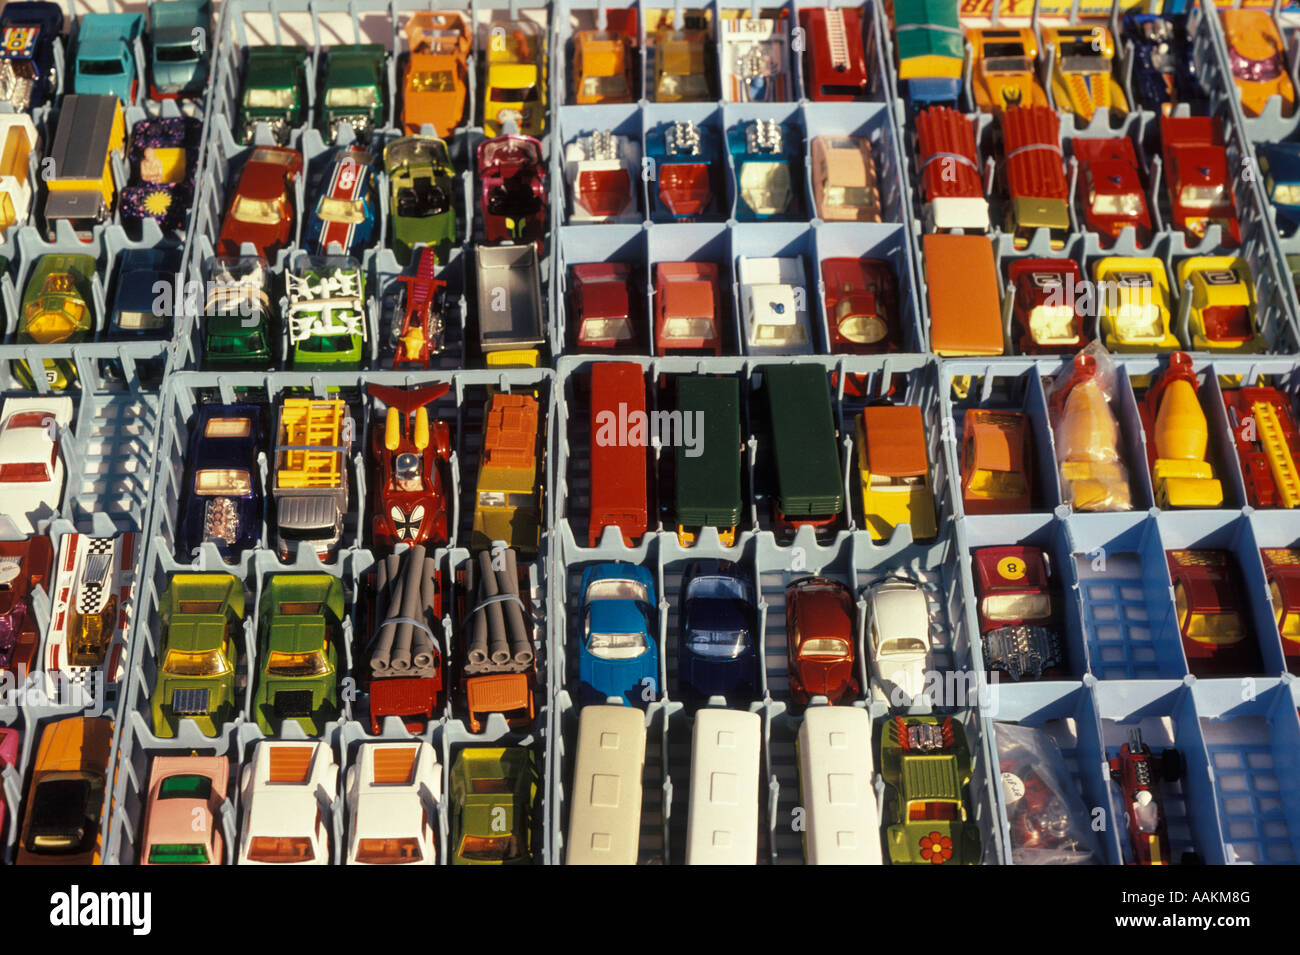 1980s COLLECTION MATCHBOX MATCH BOX CARS COLLECTIBLE TOYS ON FLEA MARKET TABLE Stock Photo